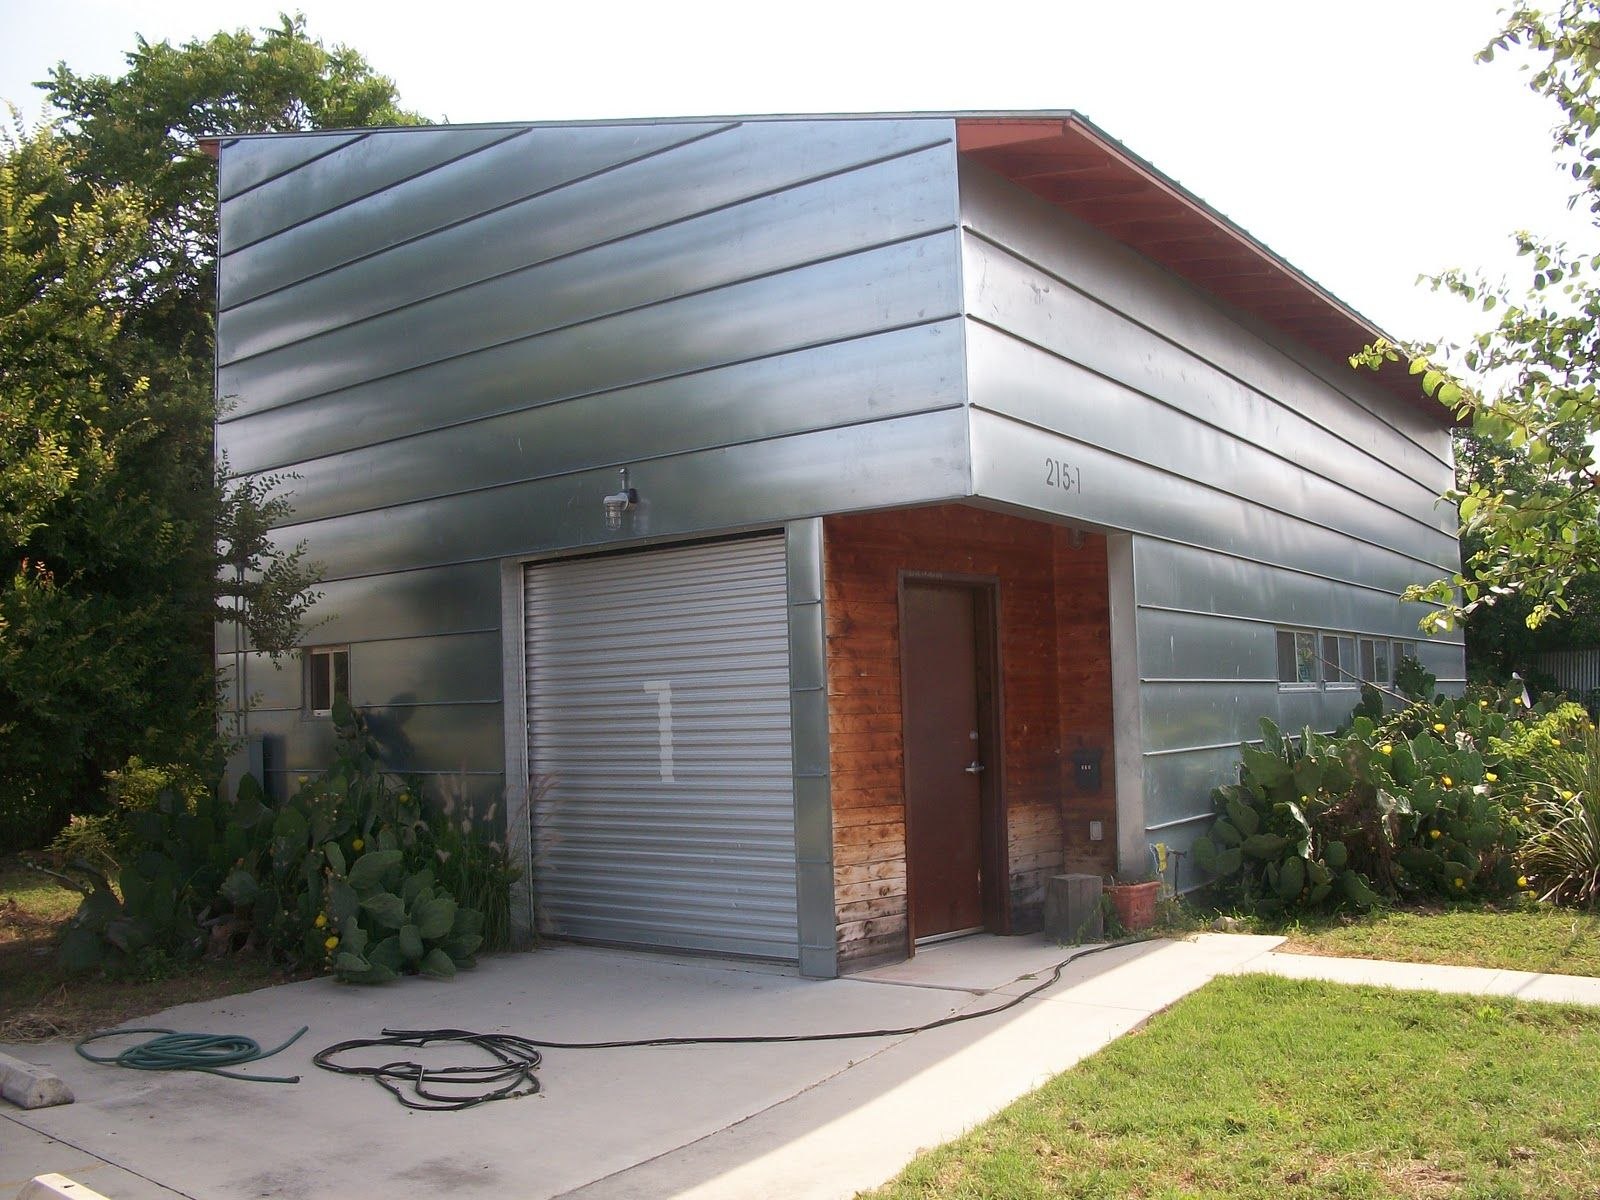 Metal Siding For Exterior Of House This Modern Home With